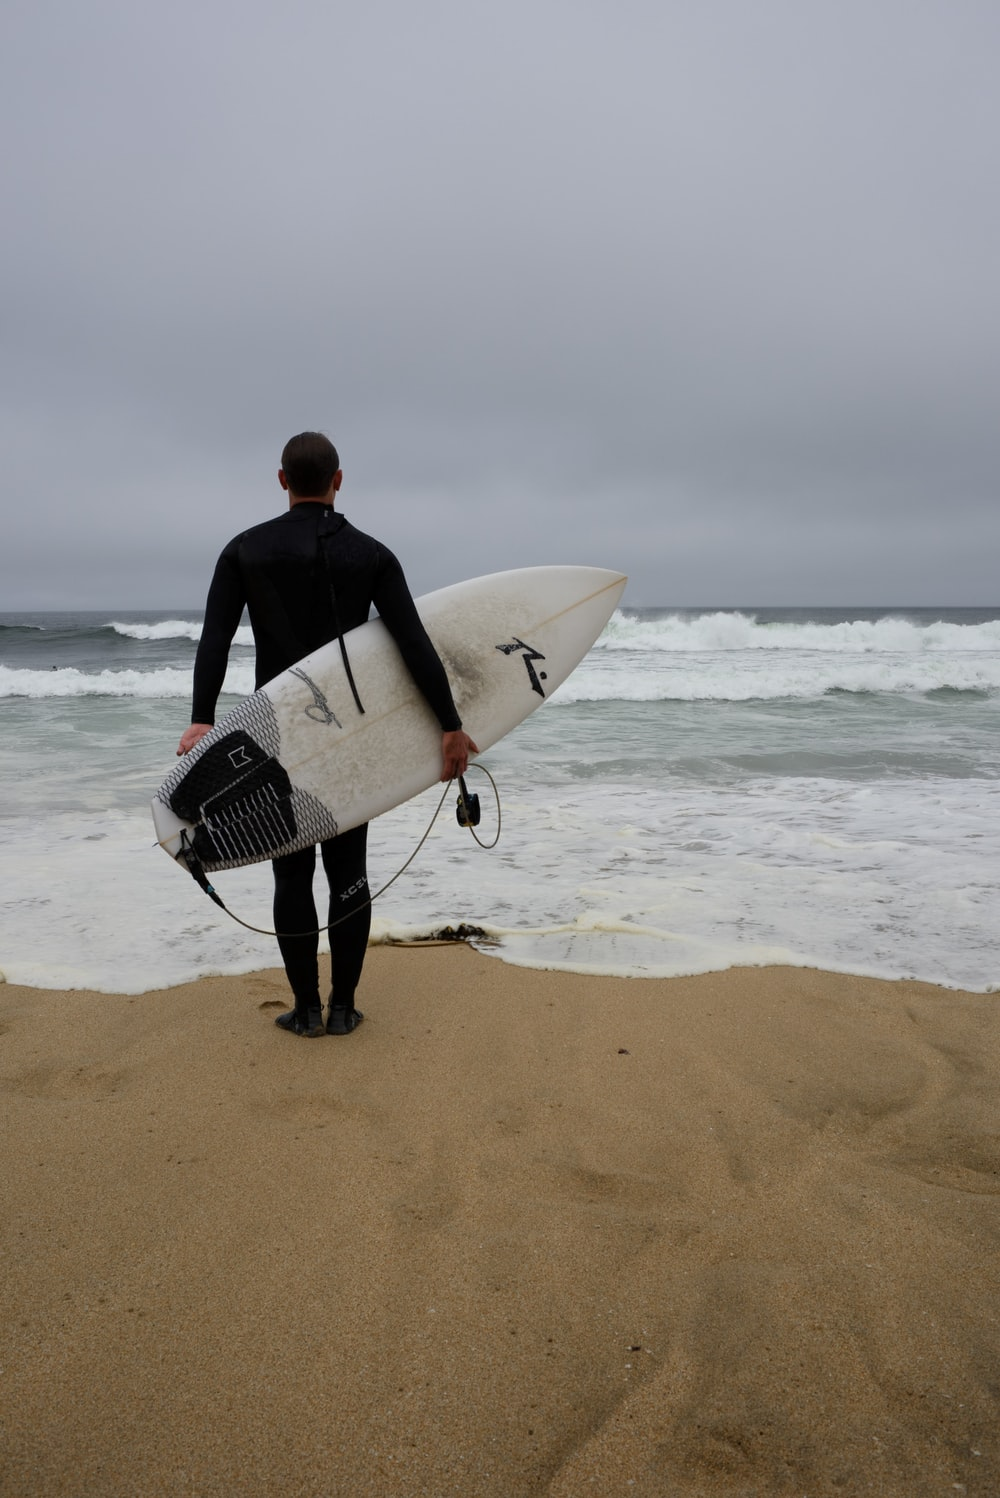 man in black suit holding white surfboard walking on beach during daytime